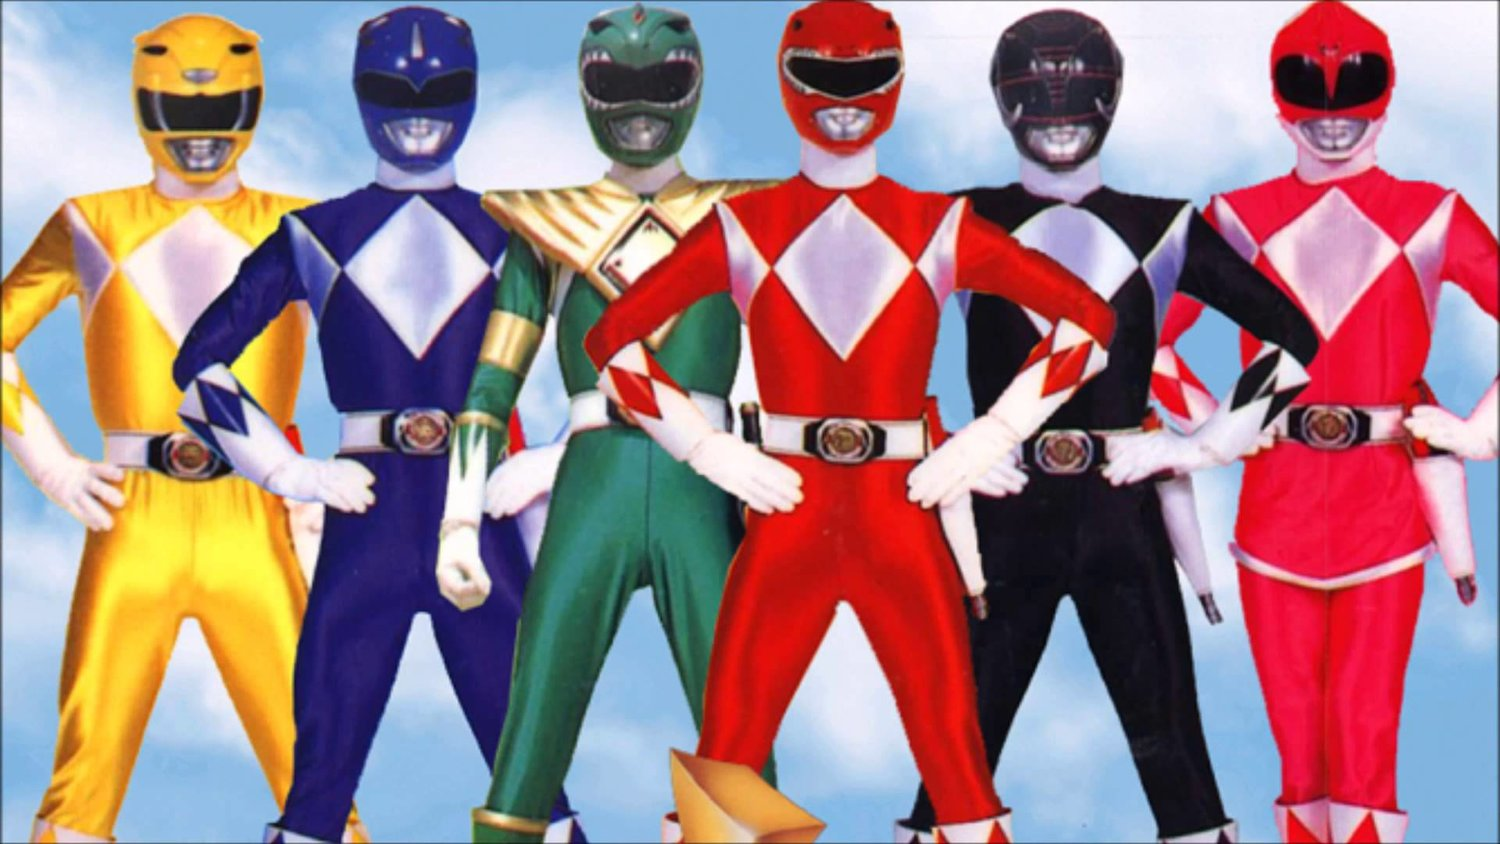 Max Landis Shares His POWER RANGERS Script That Was a Love Letter to the Original Series